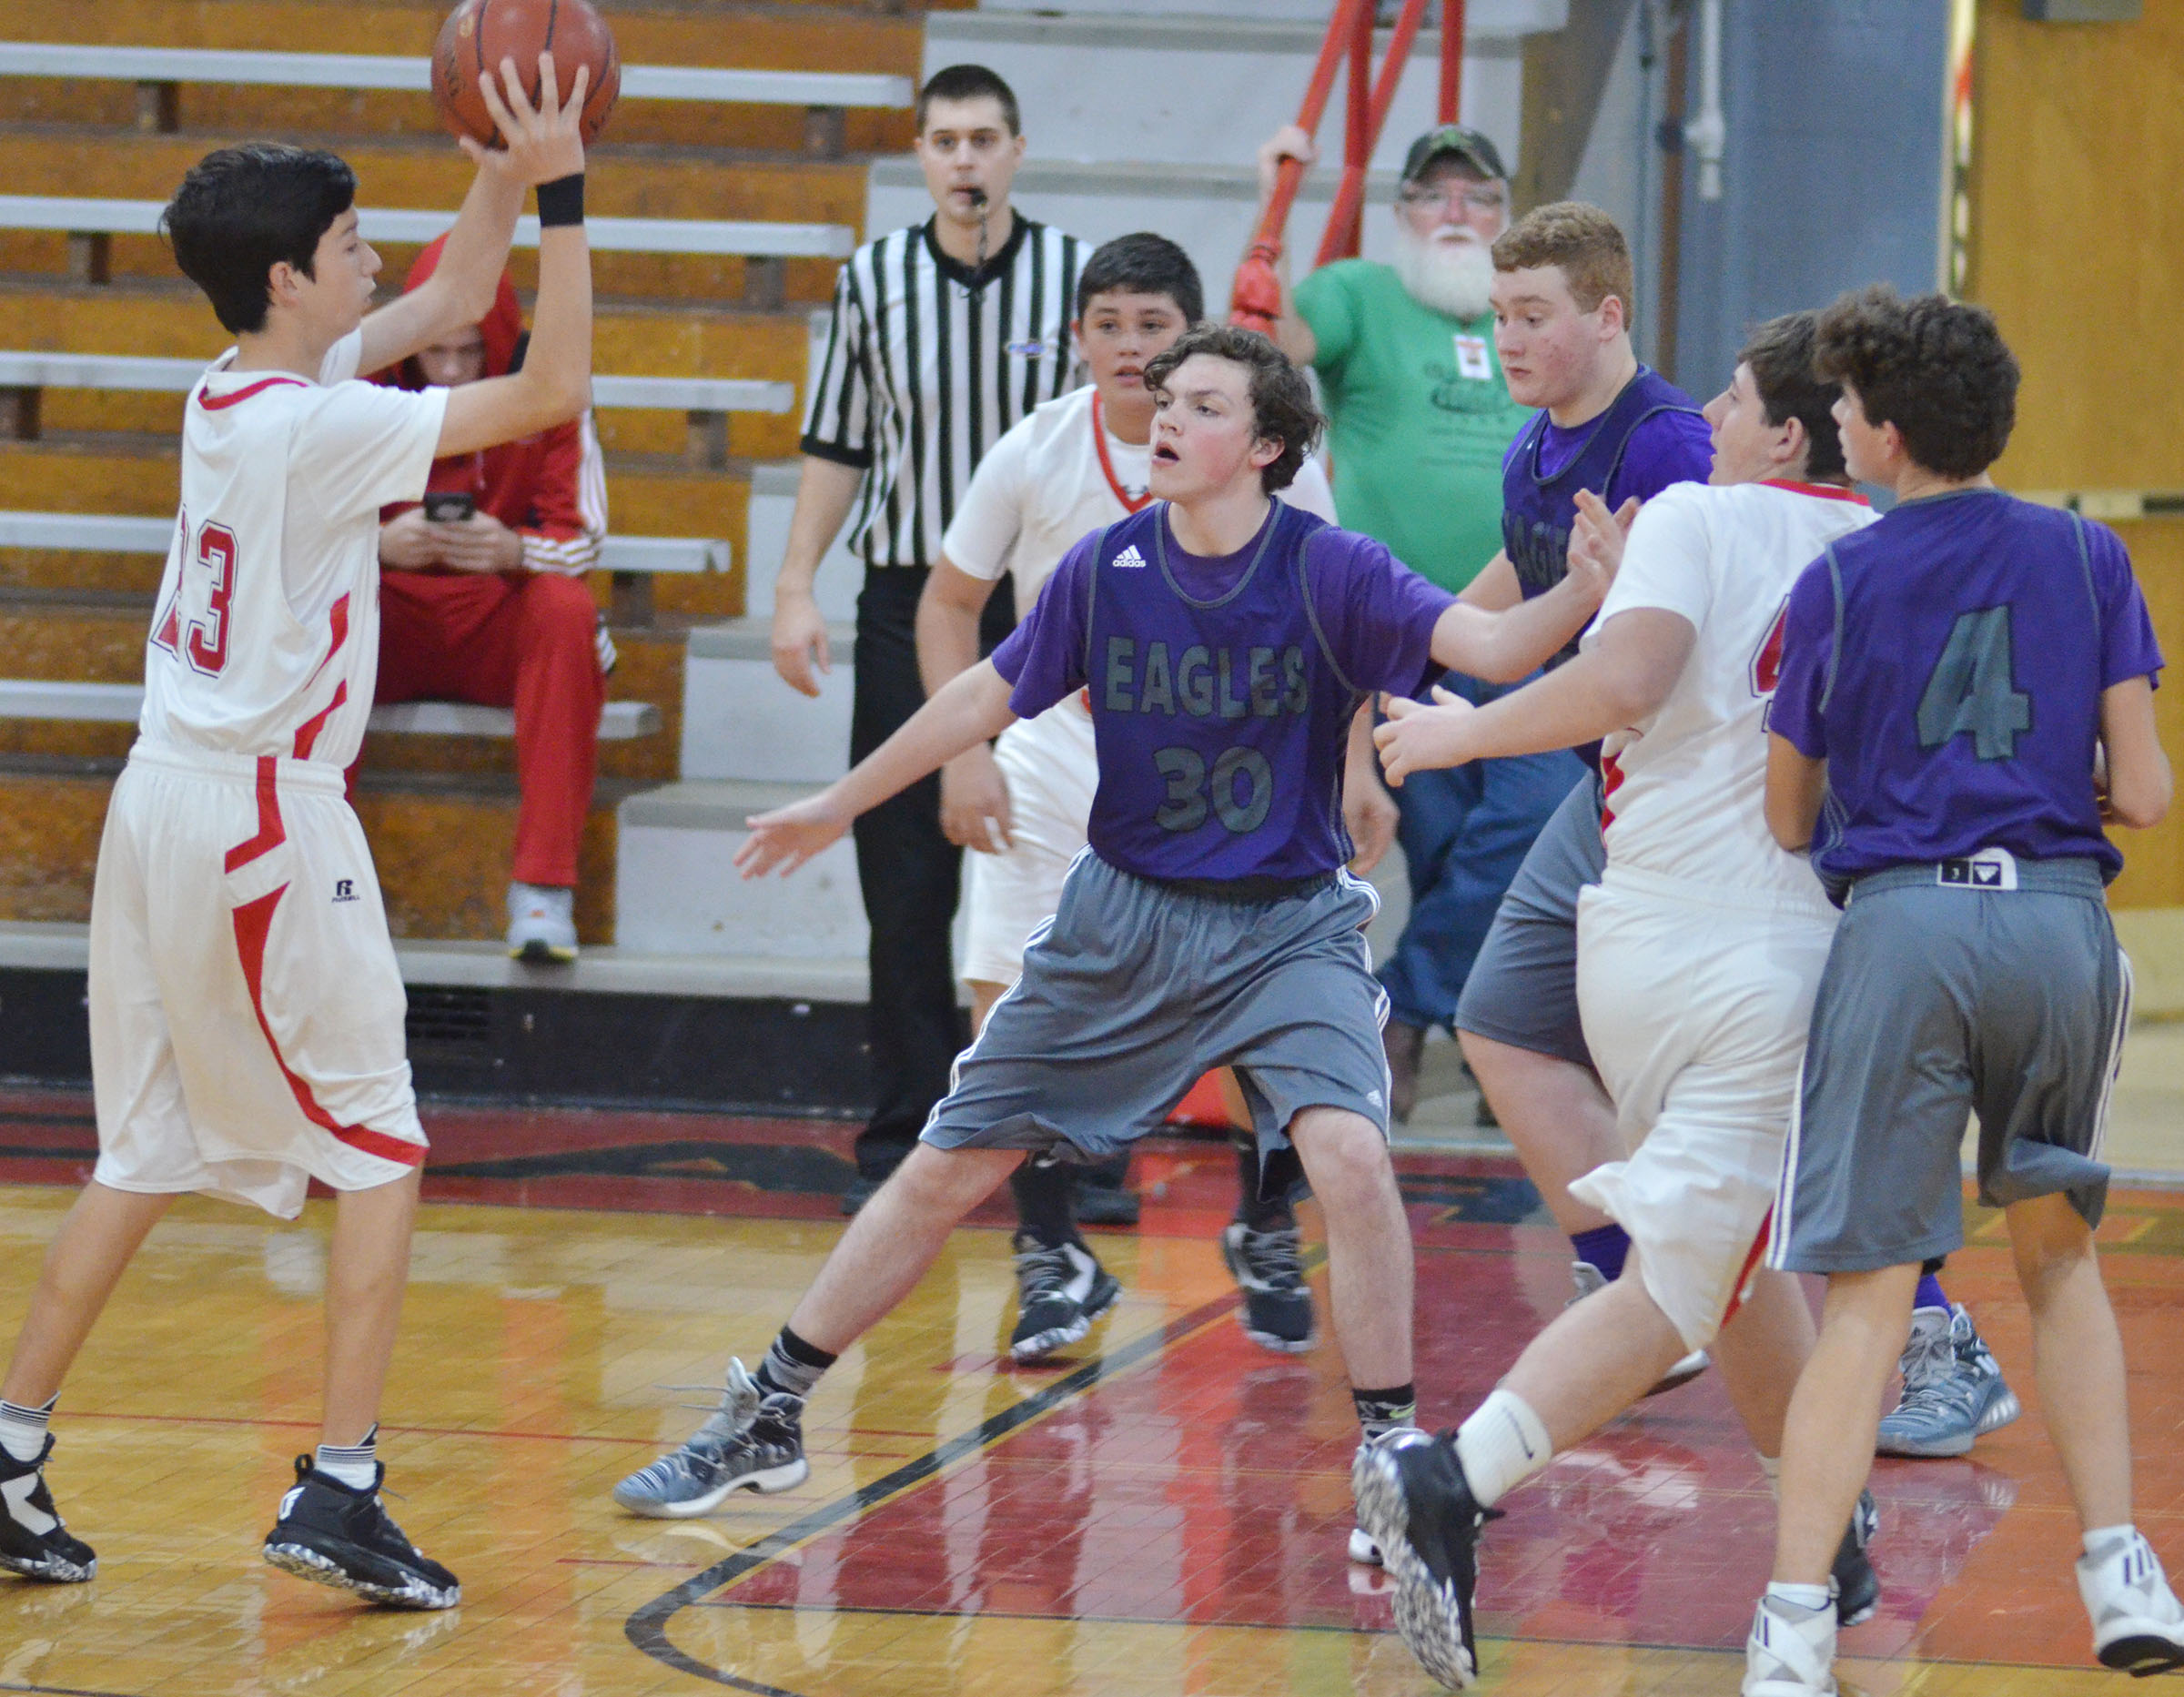 From left CHS freshman Jimmy Russell, sophomore Spencer Swafford and freshman Mark Rigsby play defense.